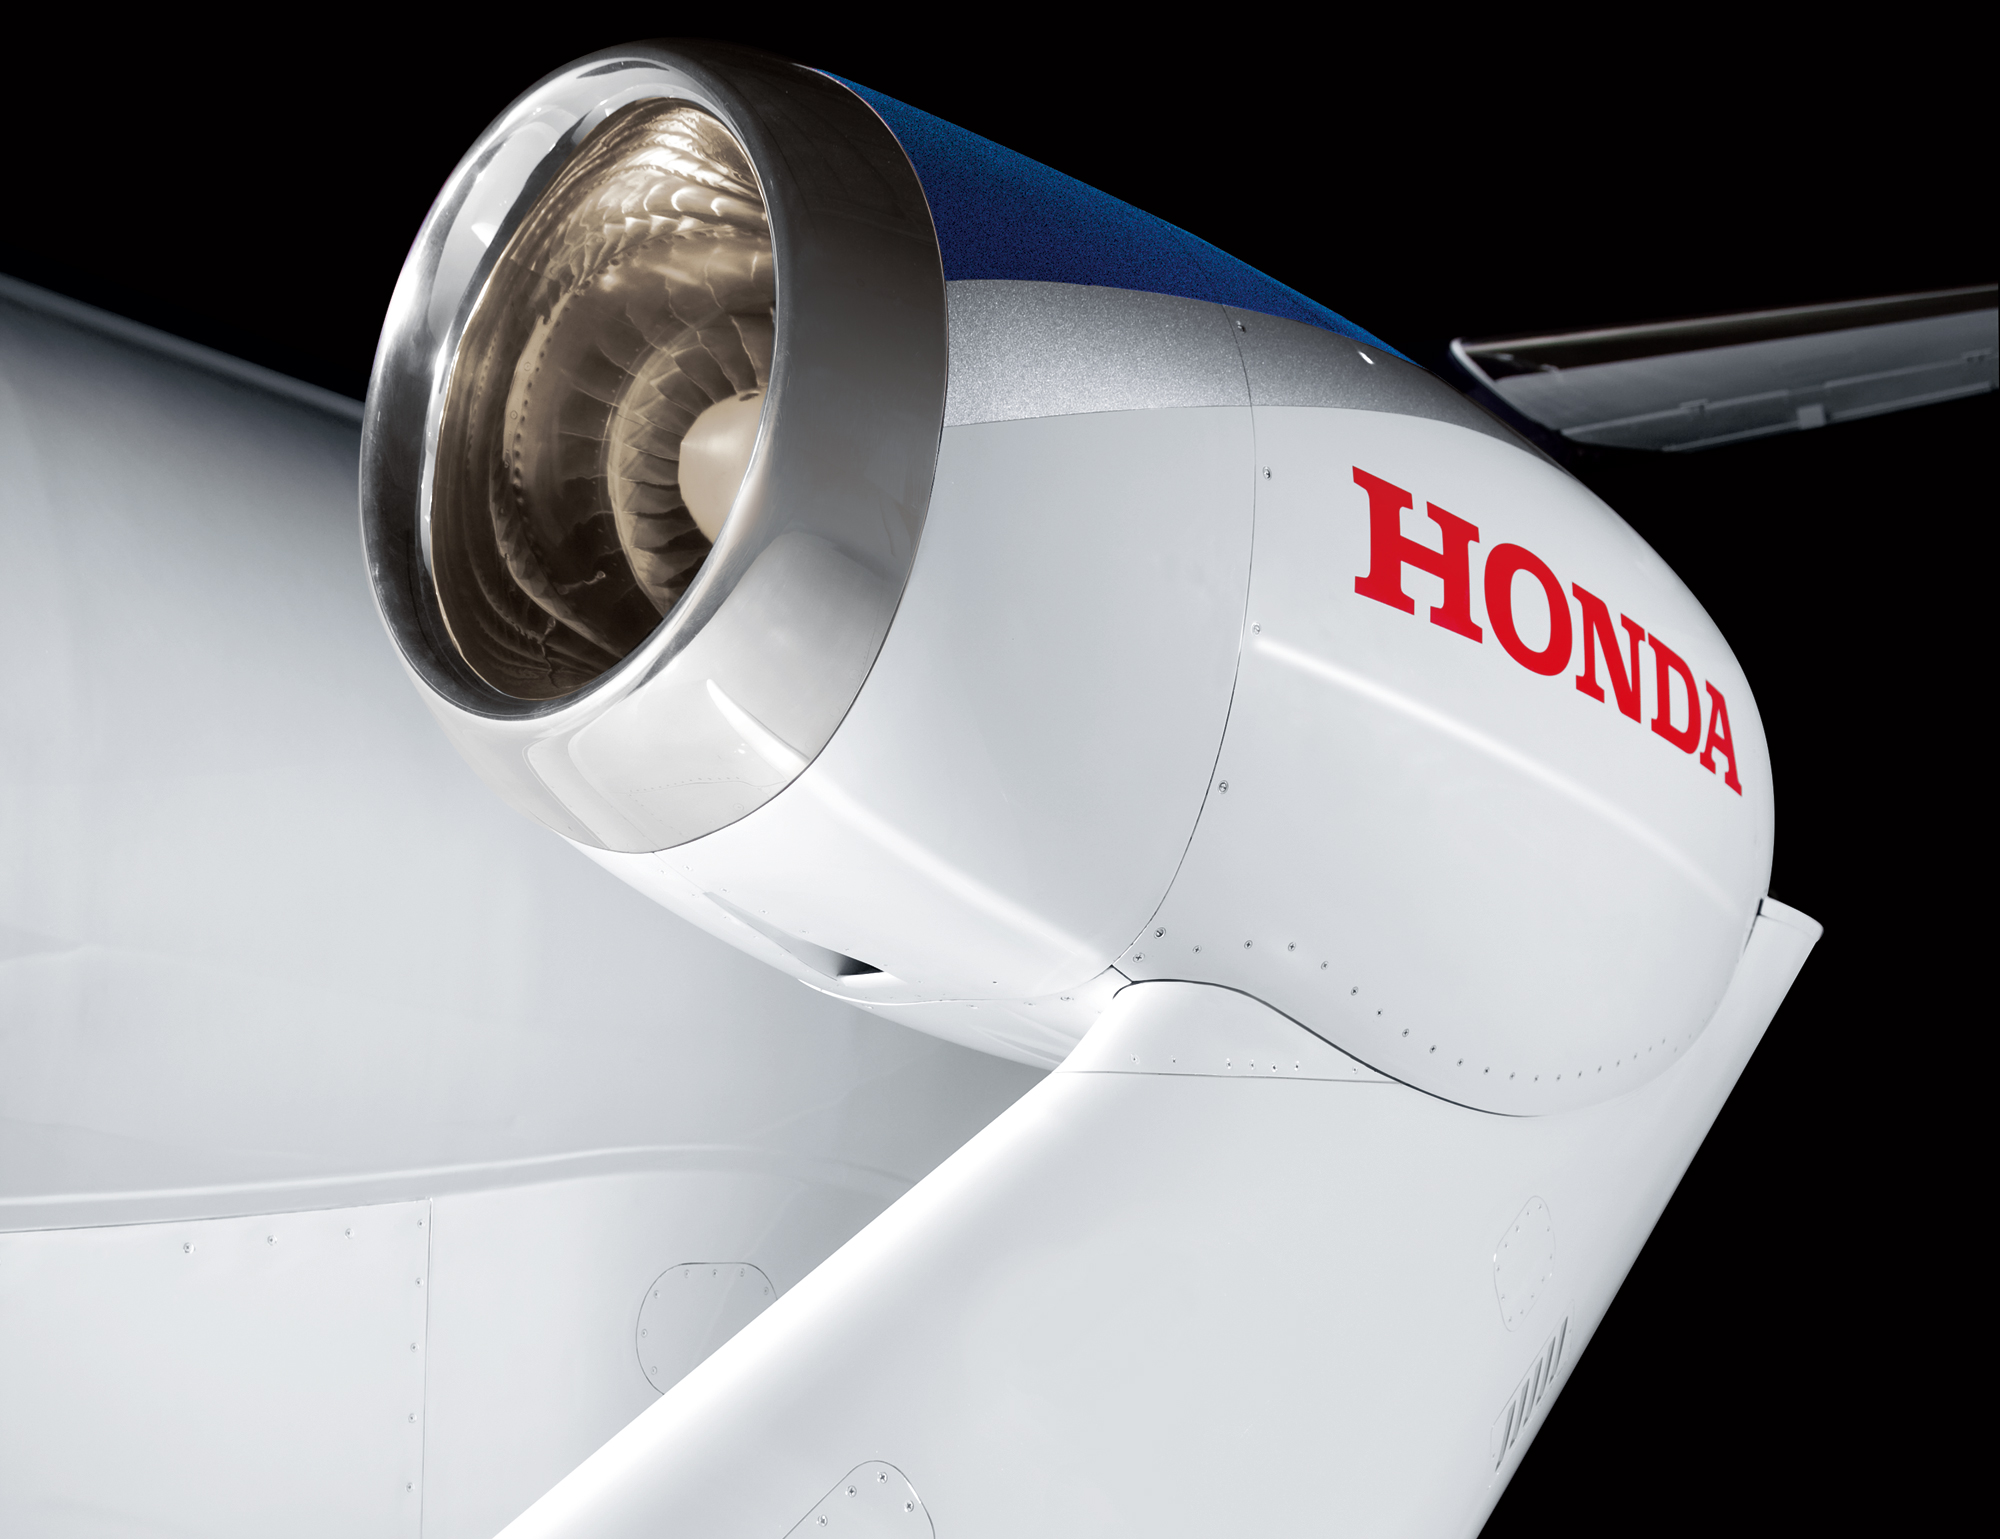 First production hondajet takes to the skies aviation times for Team honda purchase program